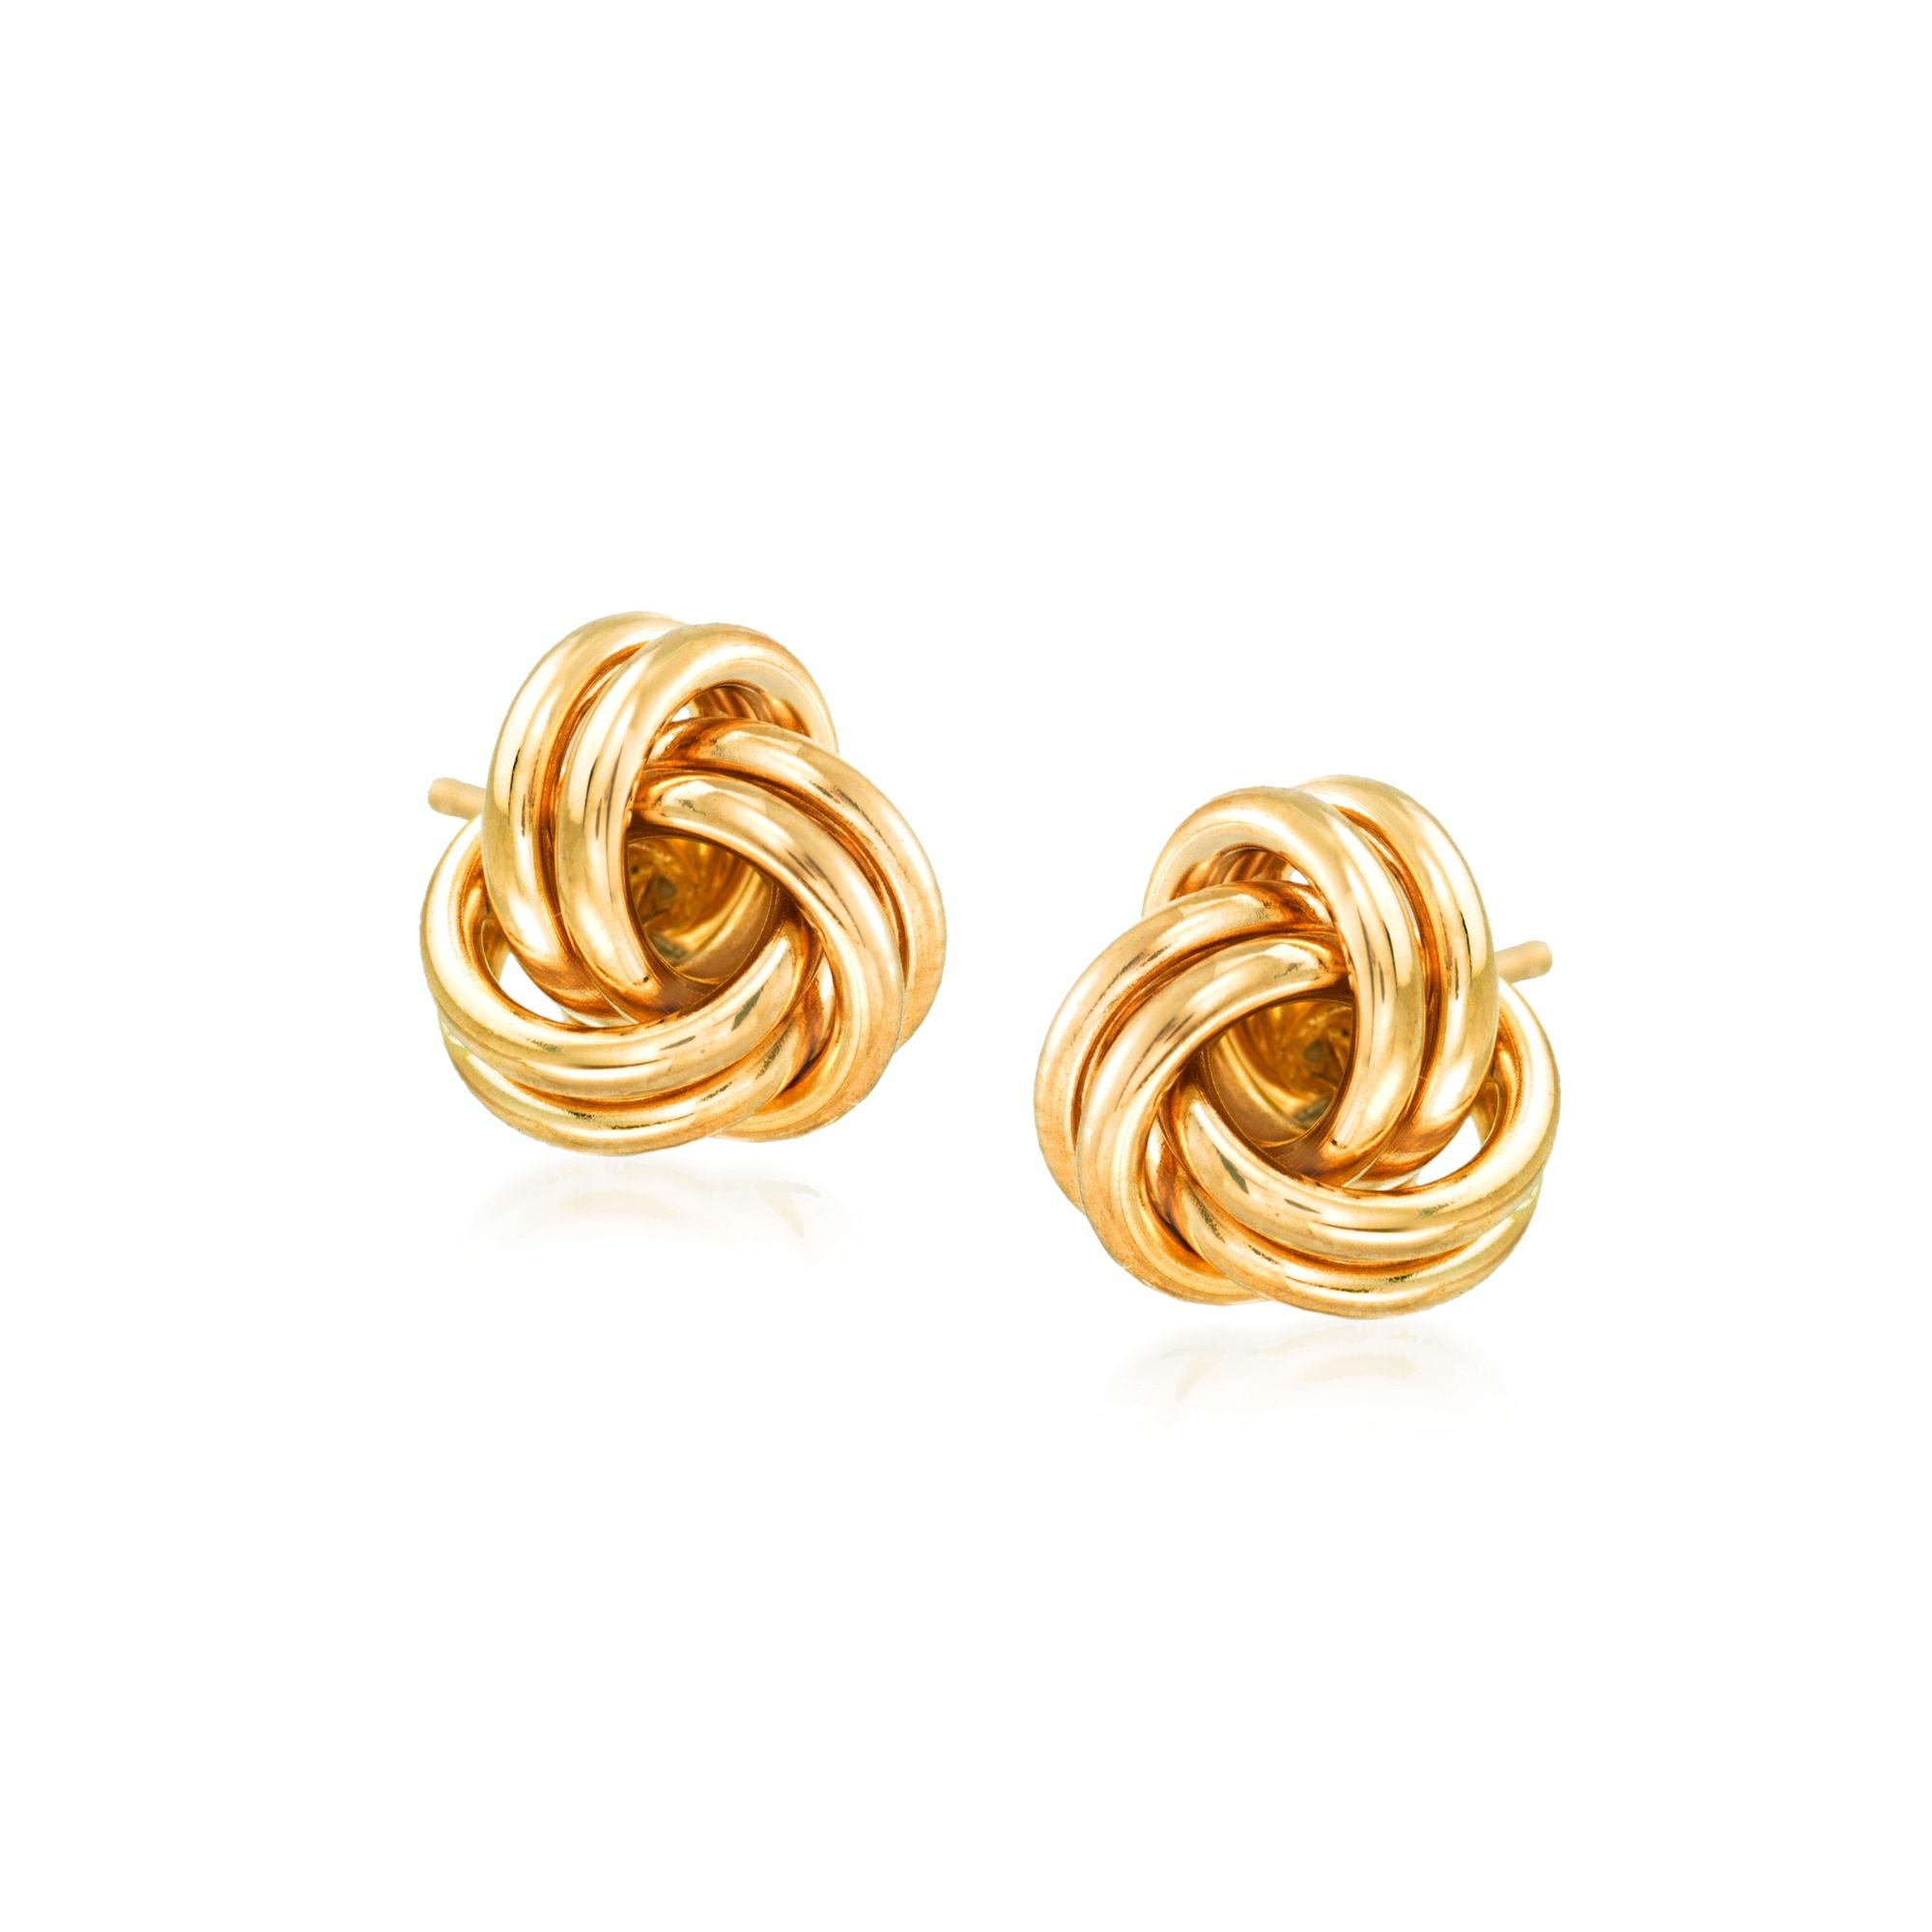 Ross-Simons 14kt Yellow Gold Love Knot Earrings, Includes Jewelry Presentation Box